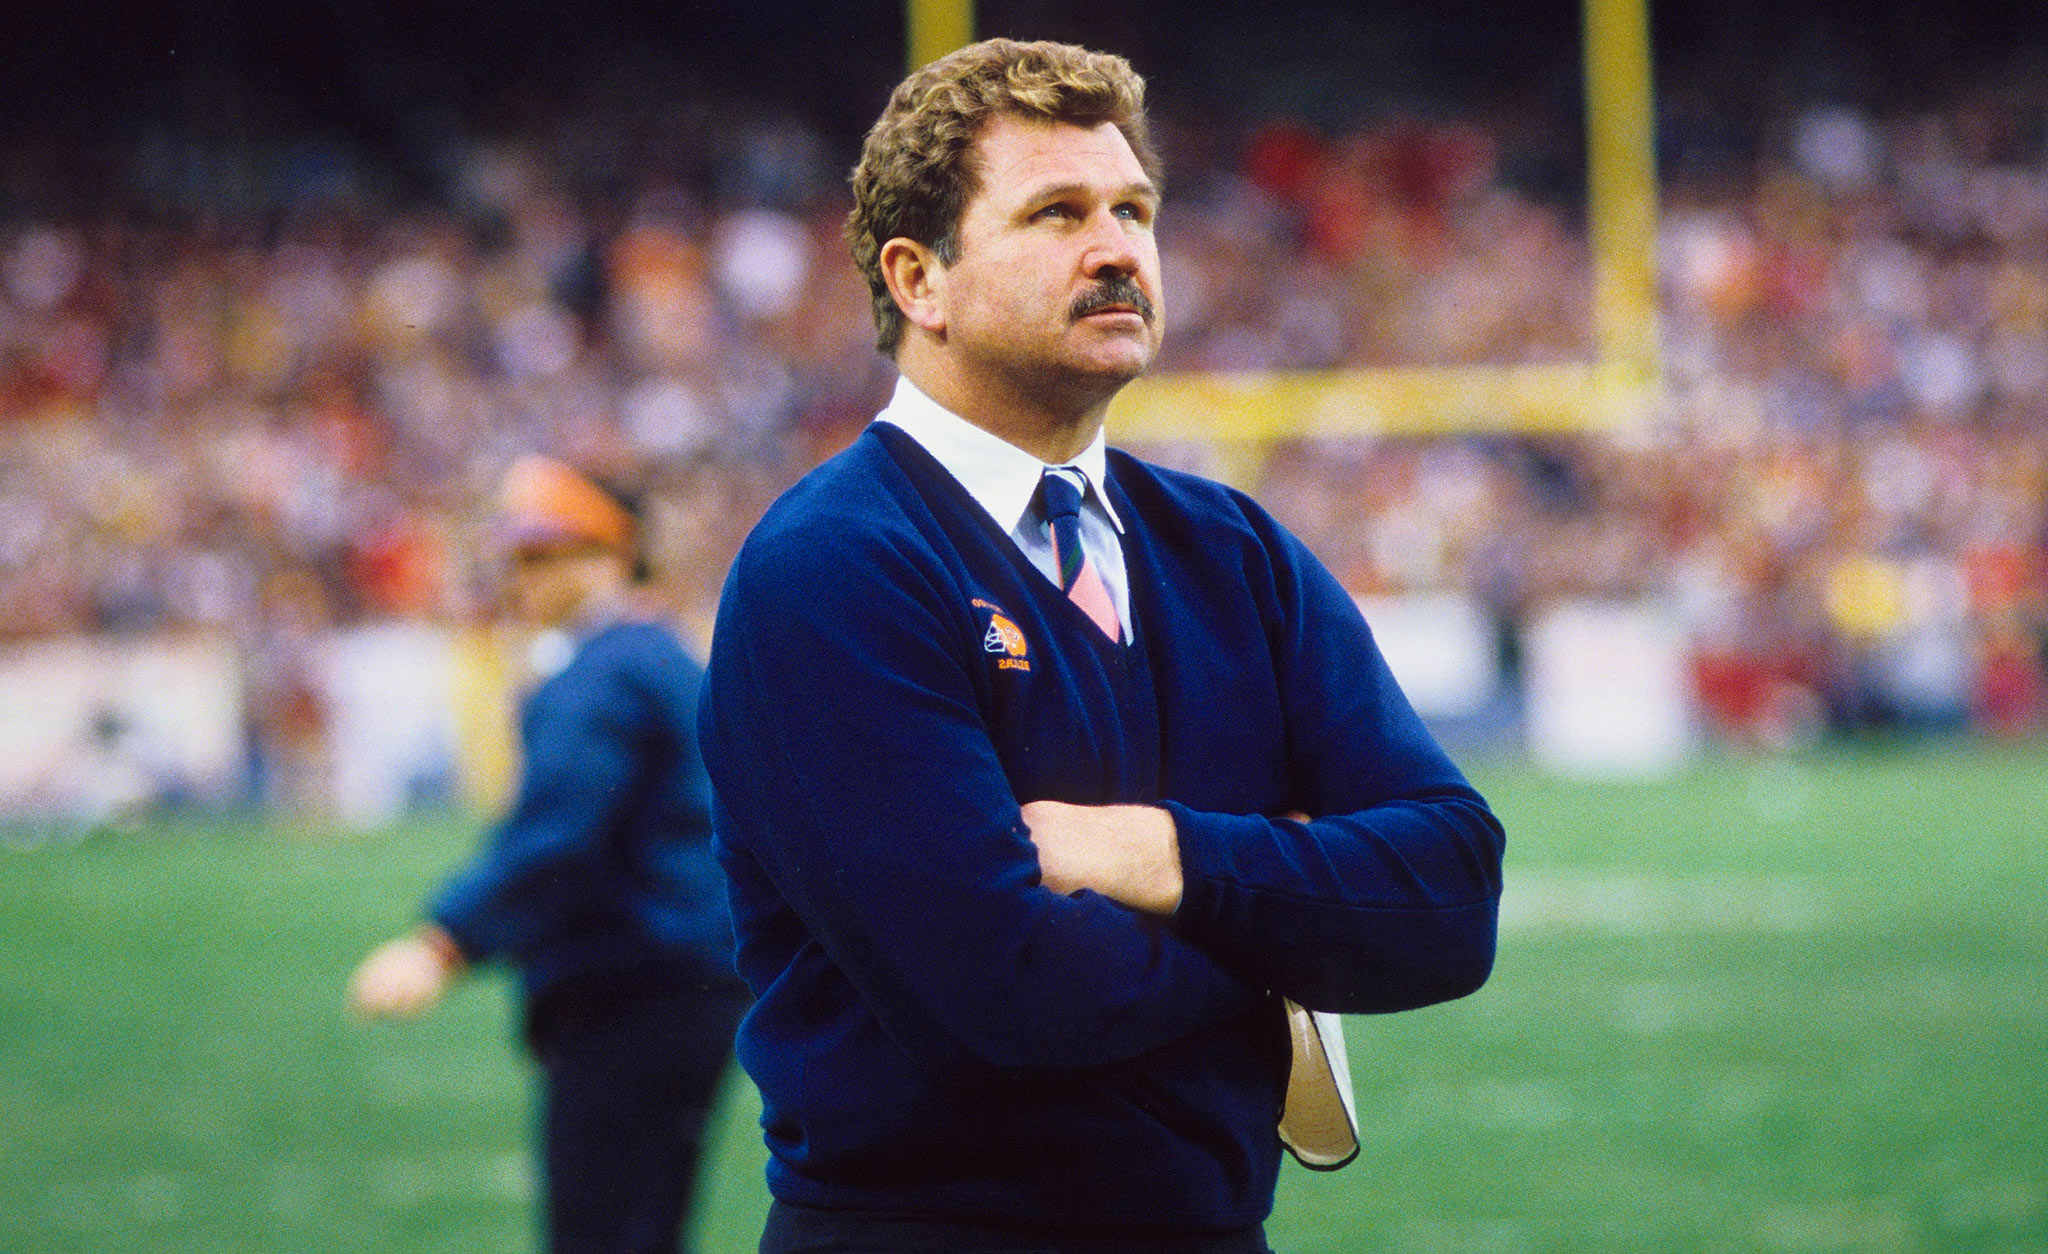 No. 3: Mike Ditka